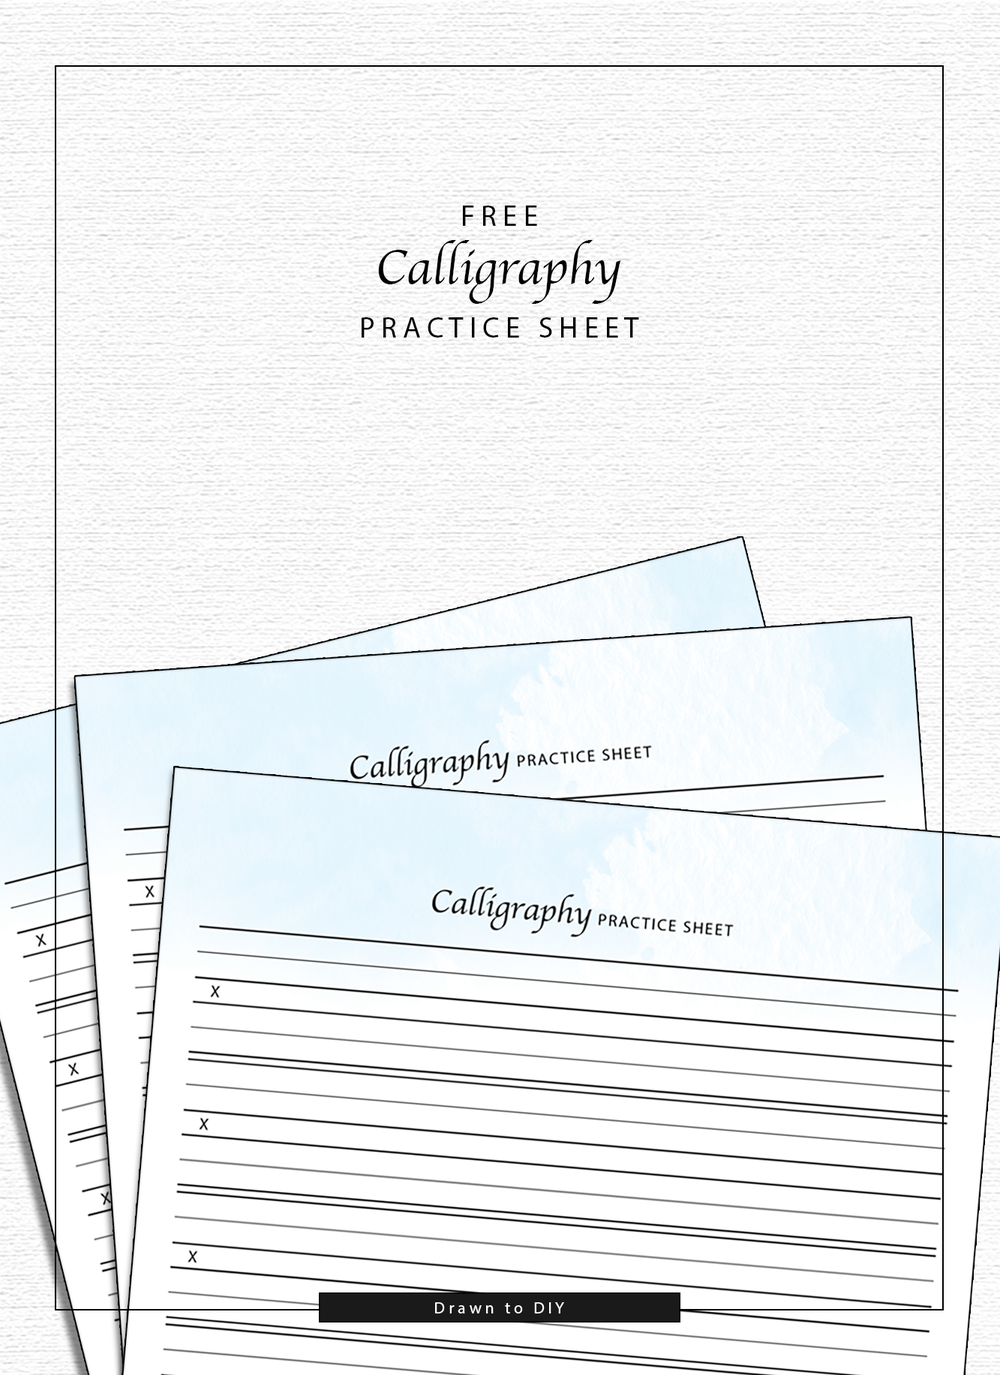 Worksheet Free Homework Sheets calligraphy practice sheet drawn to diy free from diy